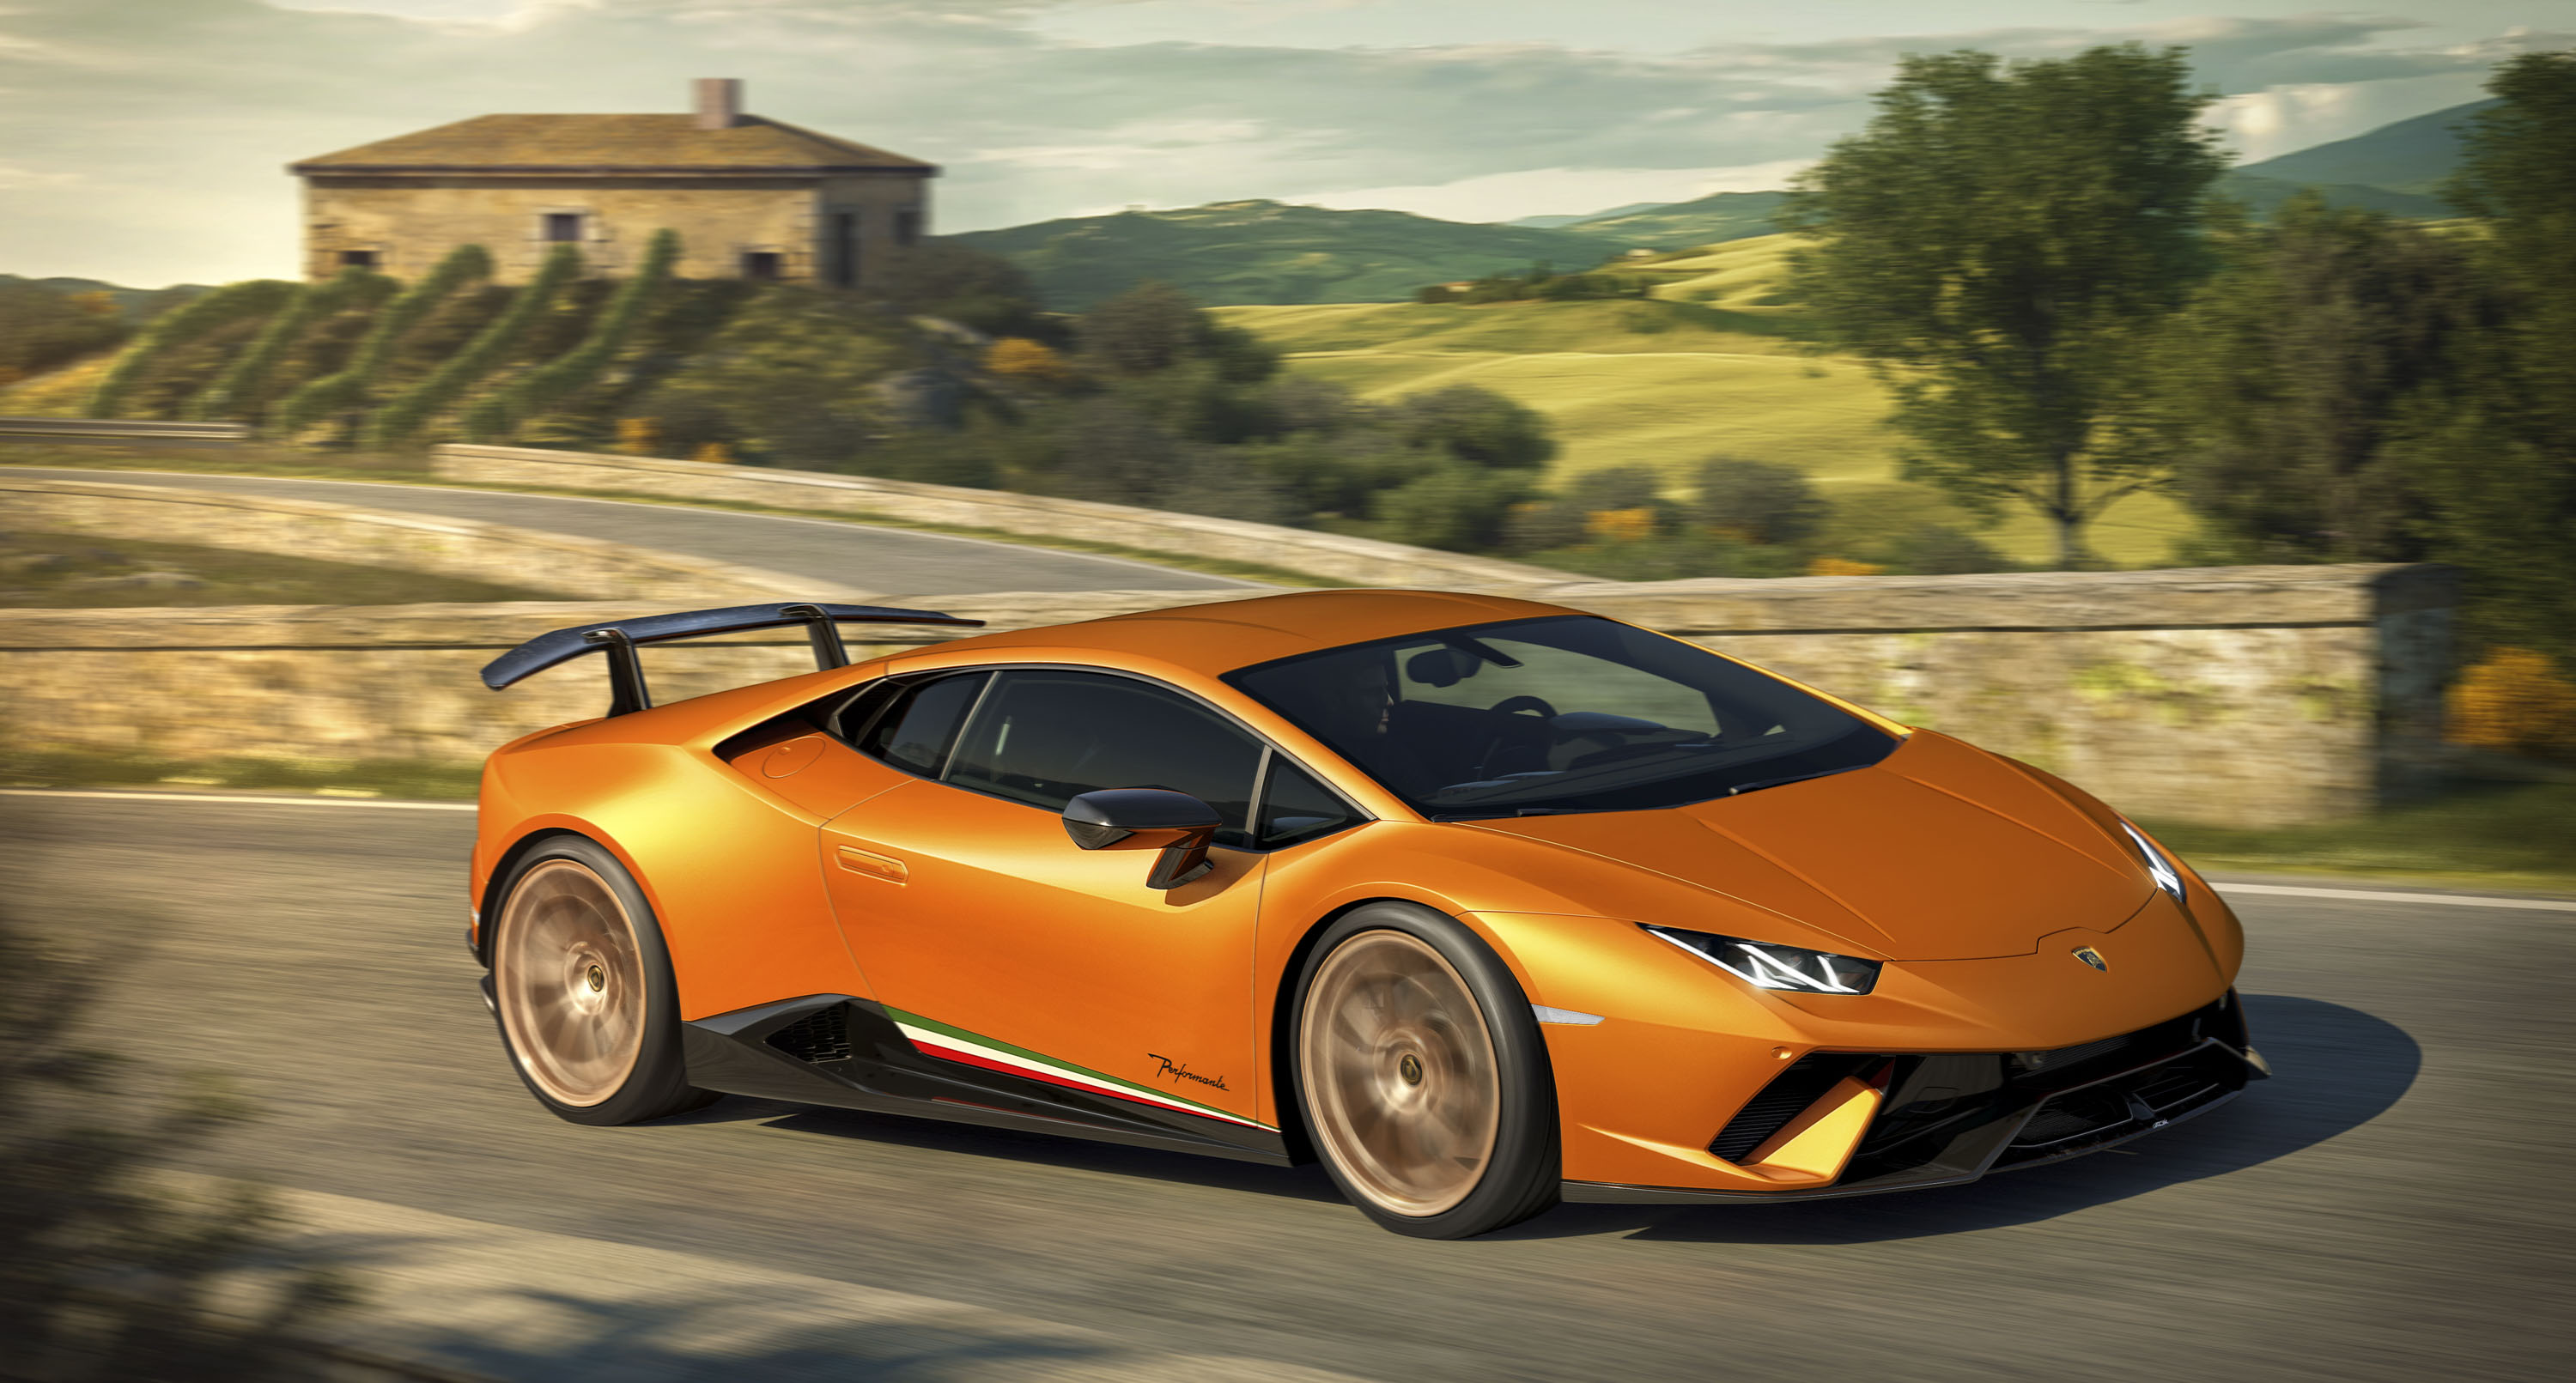 Watch A Lamborghini Huracan Performante Race A Mig 29k Fighter Jet